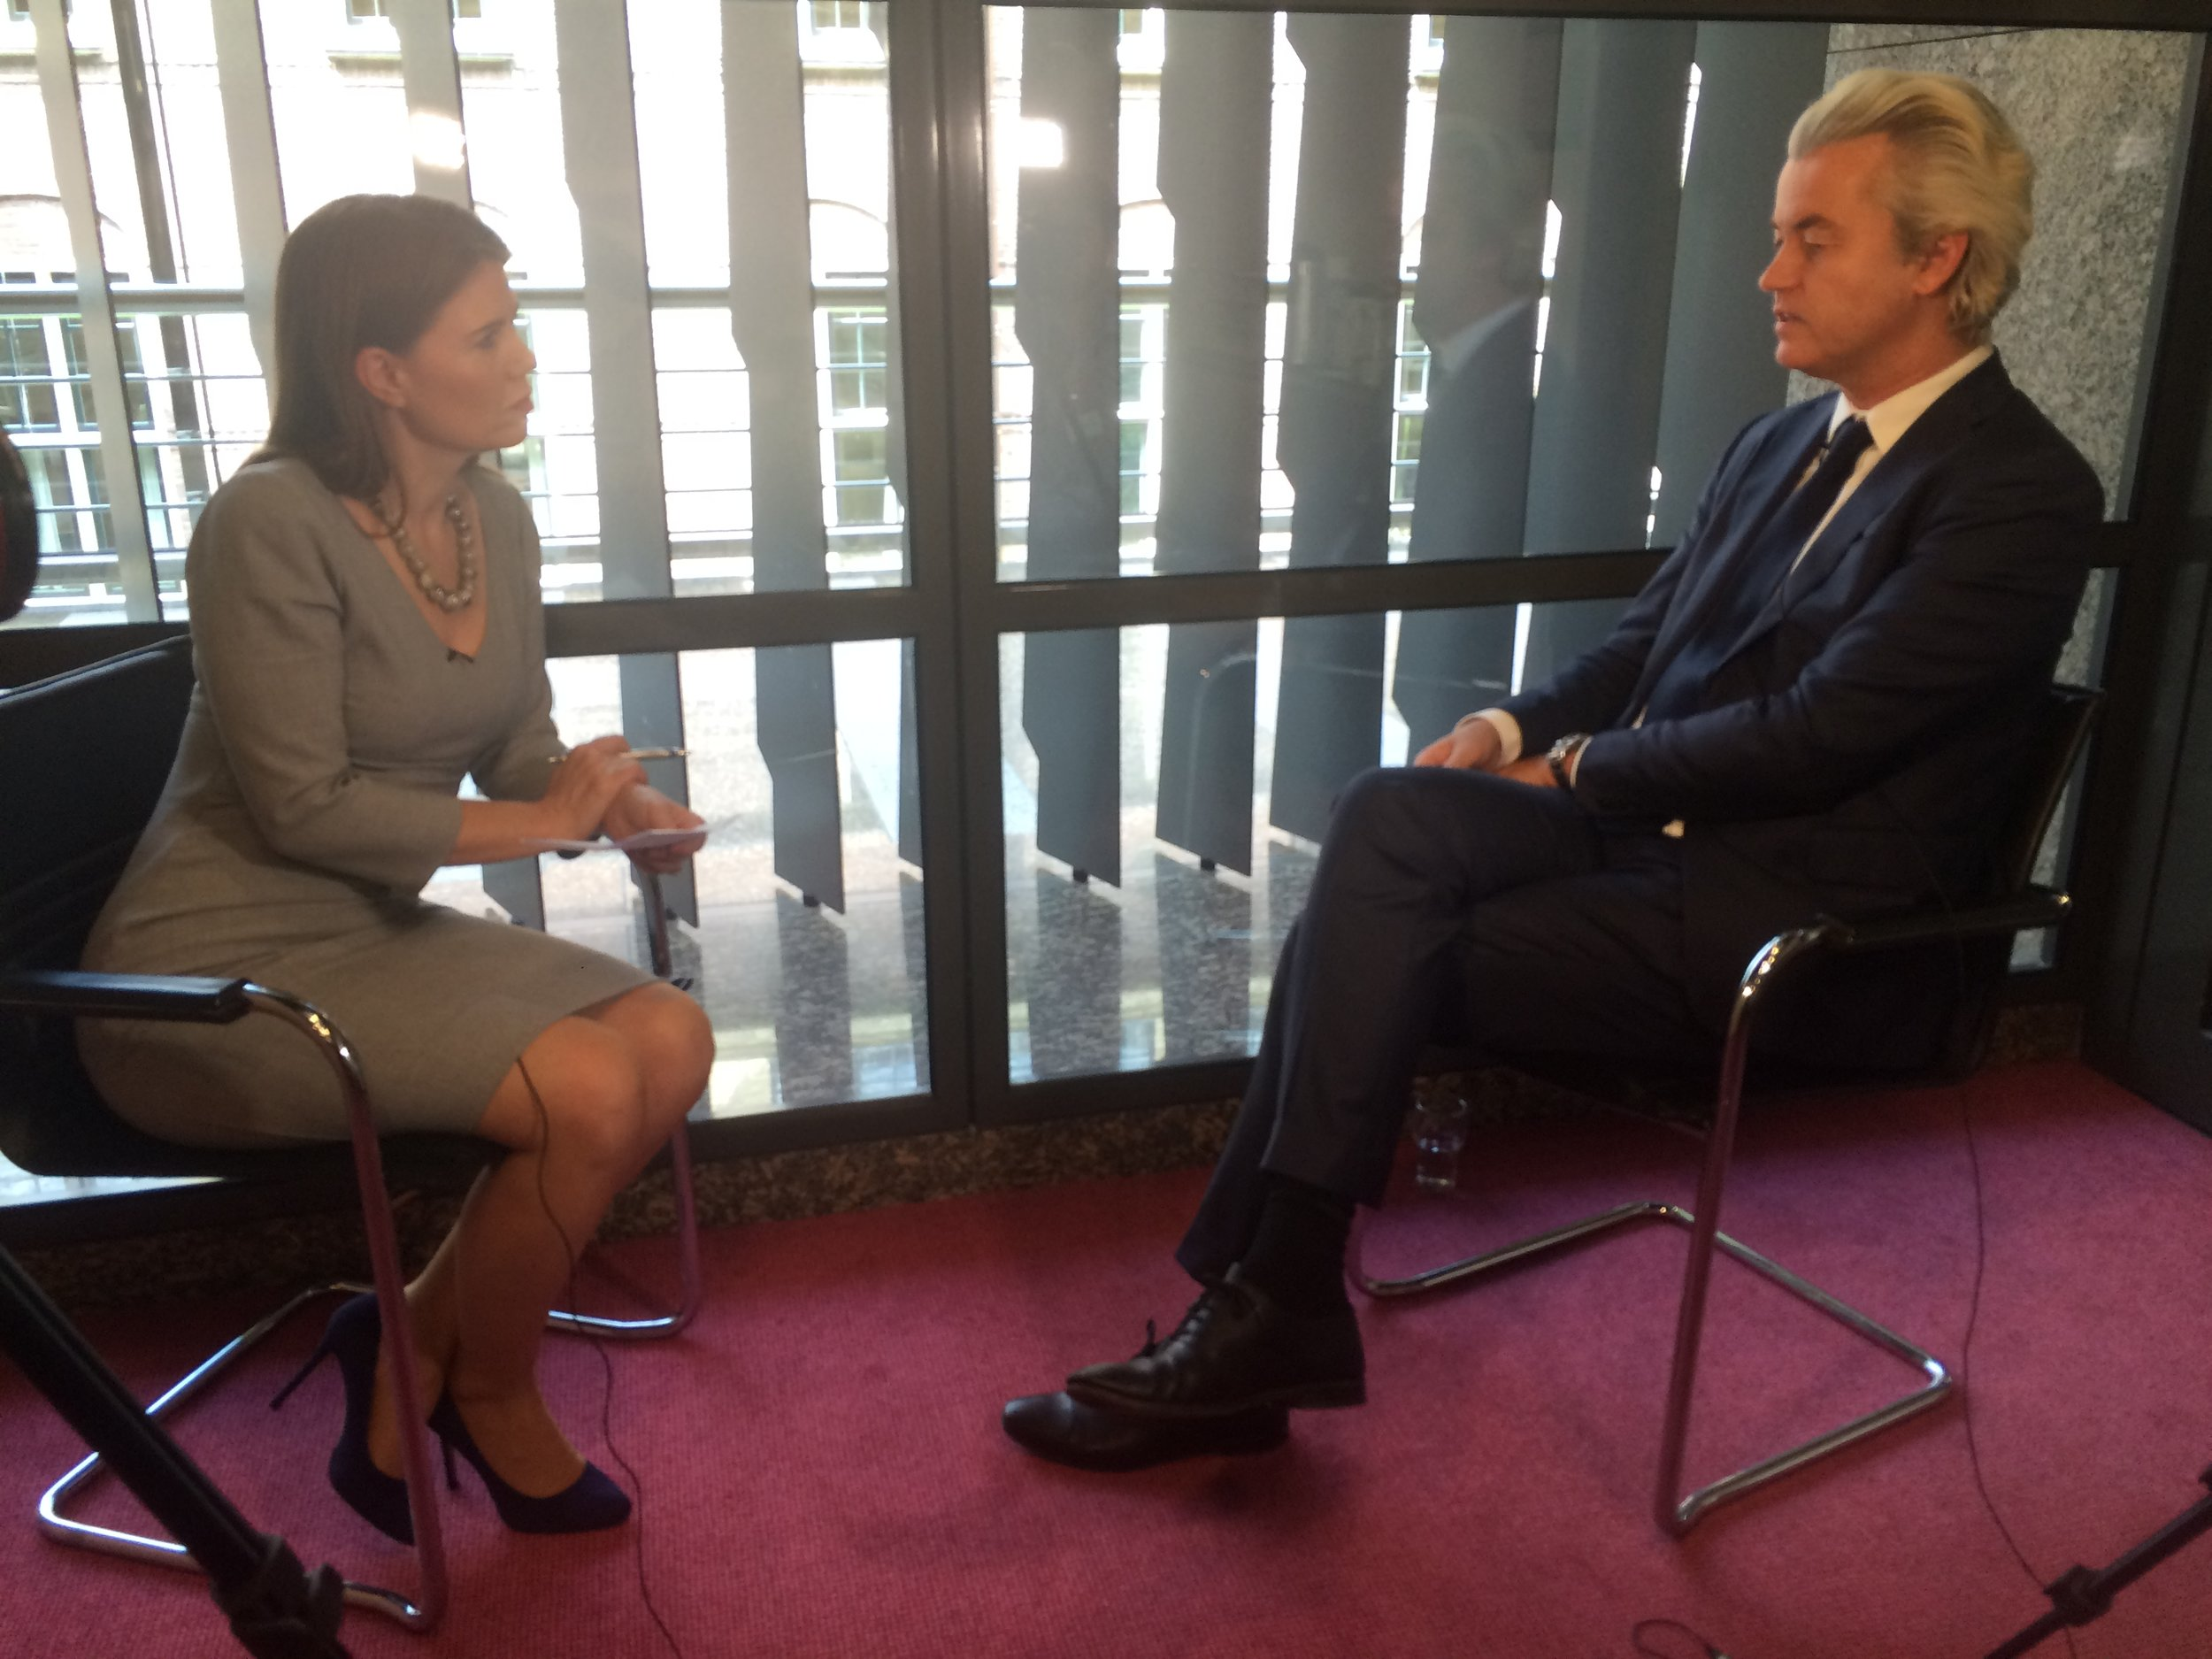 TV interview with controversial Dutch politician Geert Wilders in The Hague.